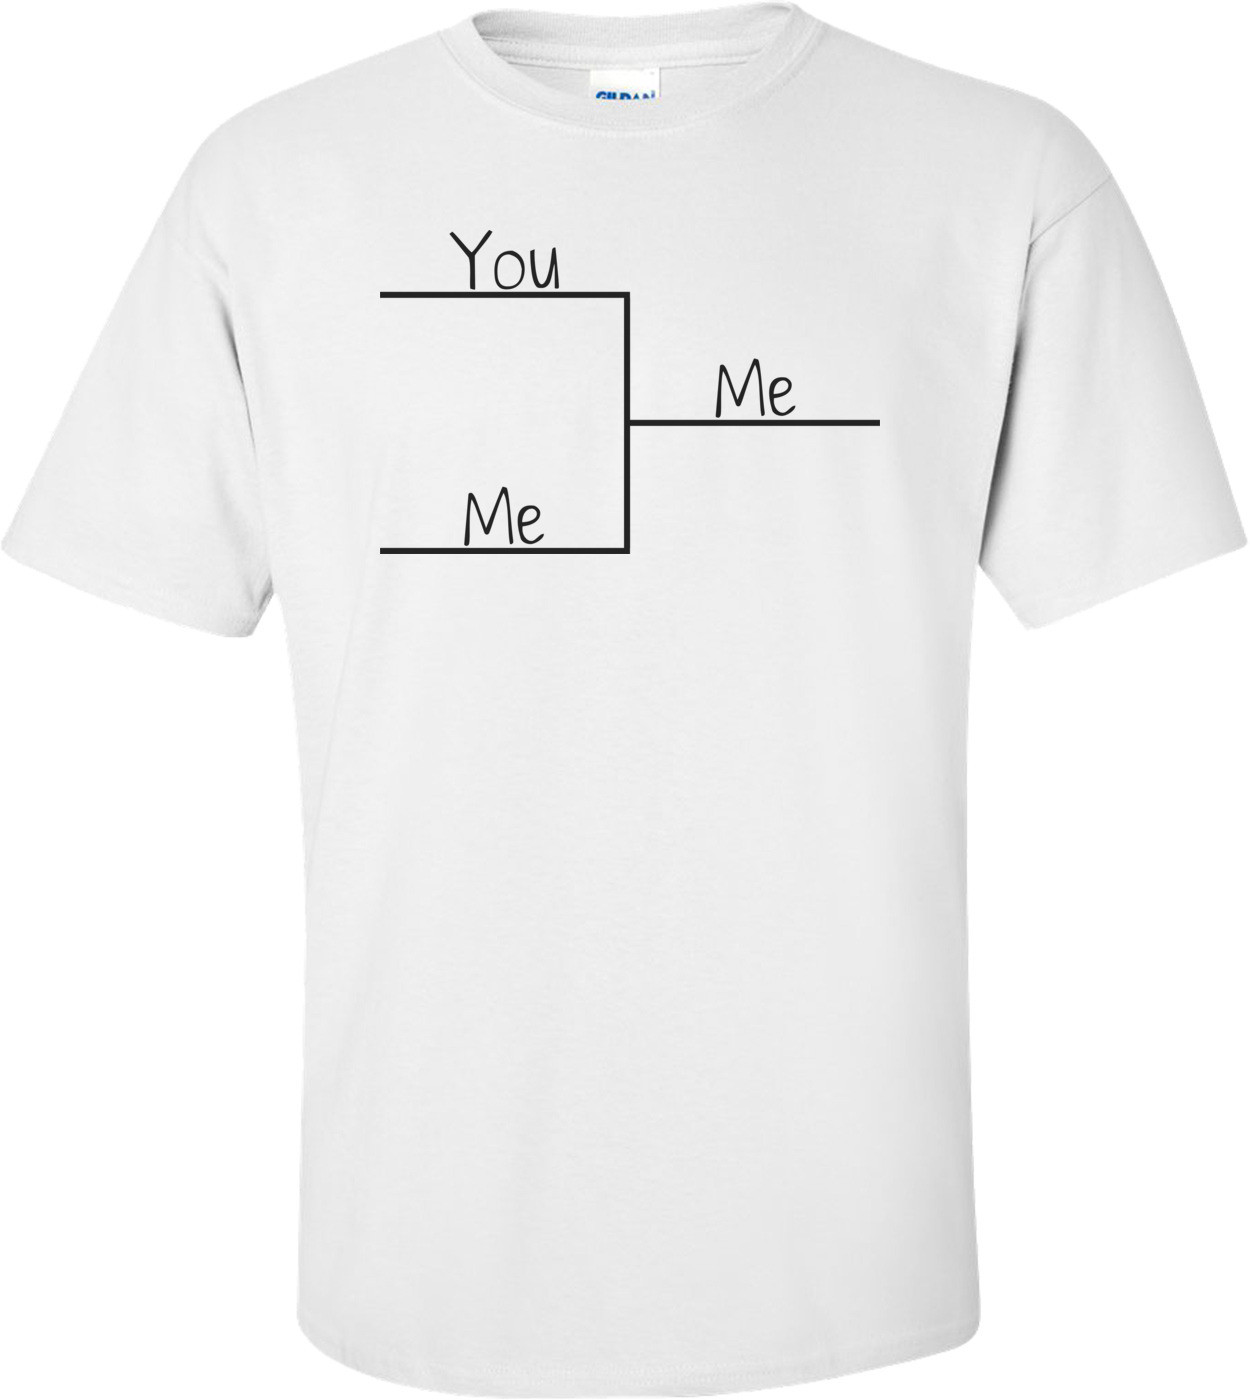 Me Beating You Bracket T-shirt